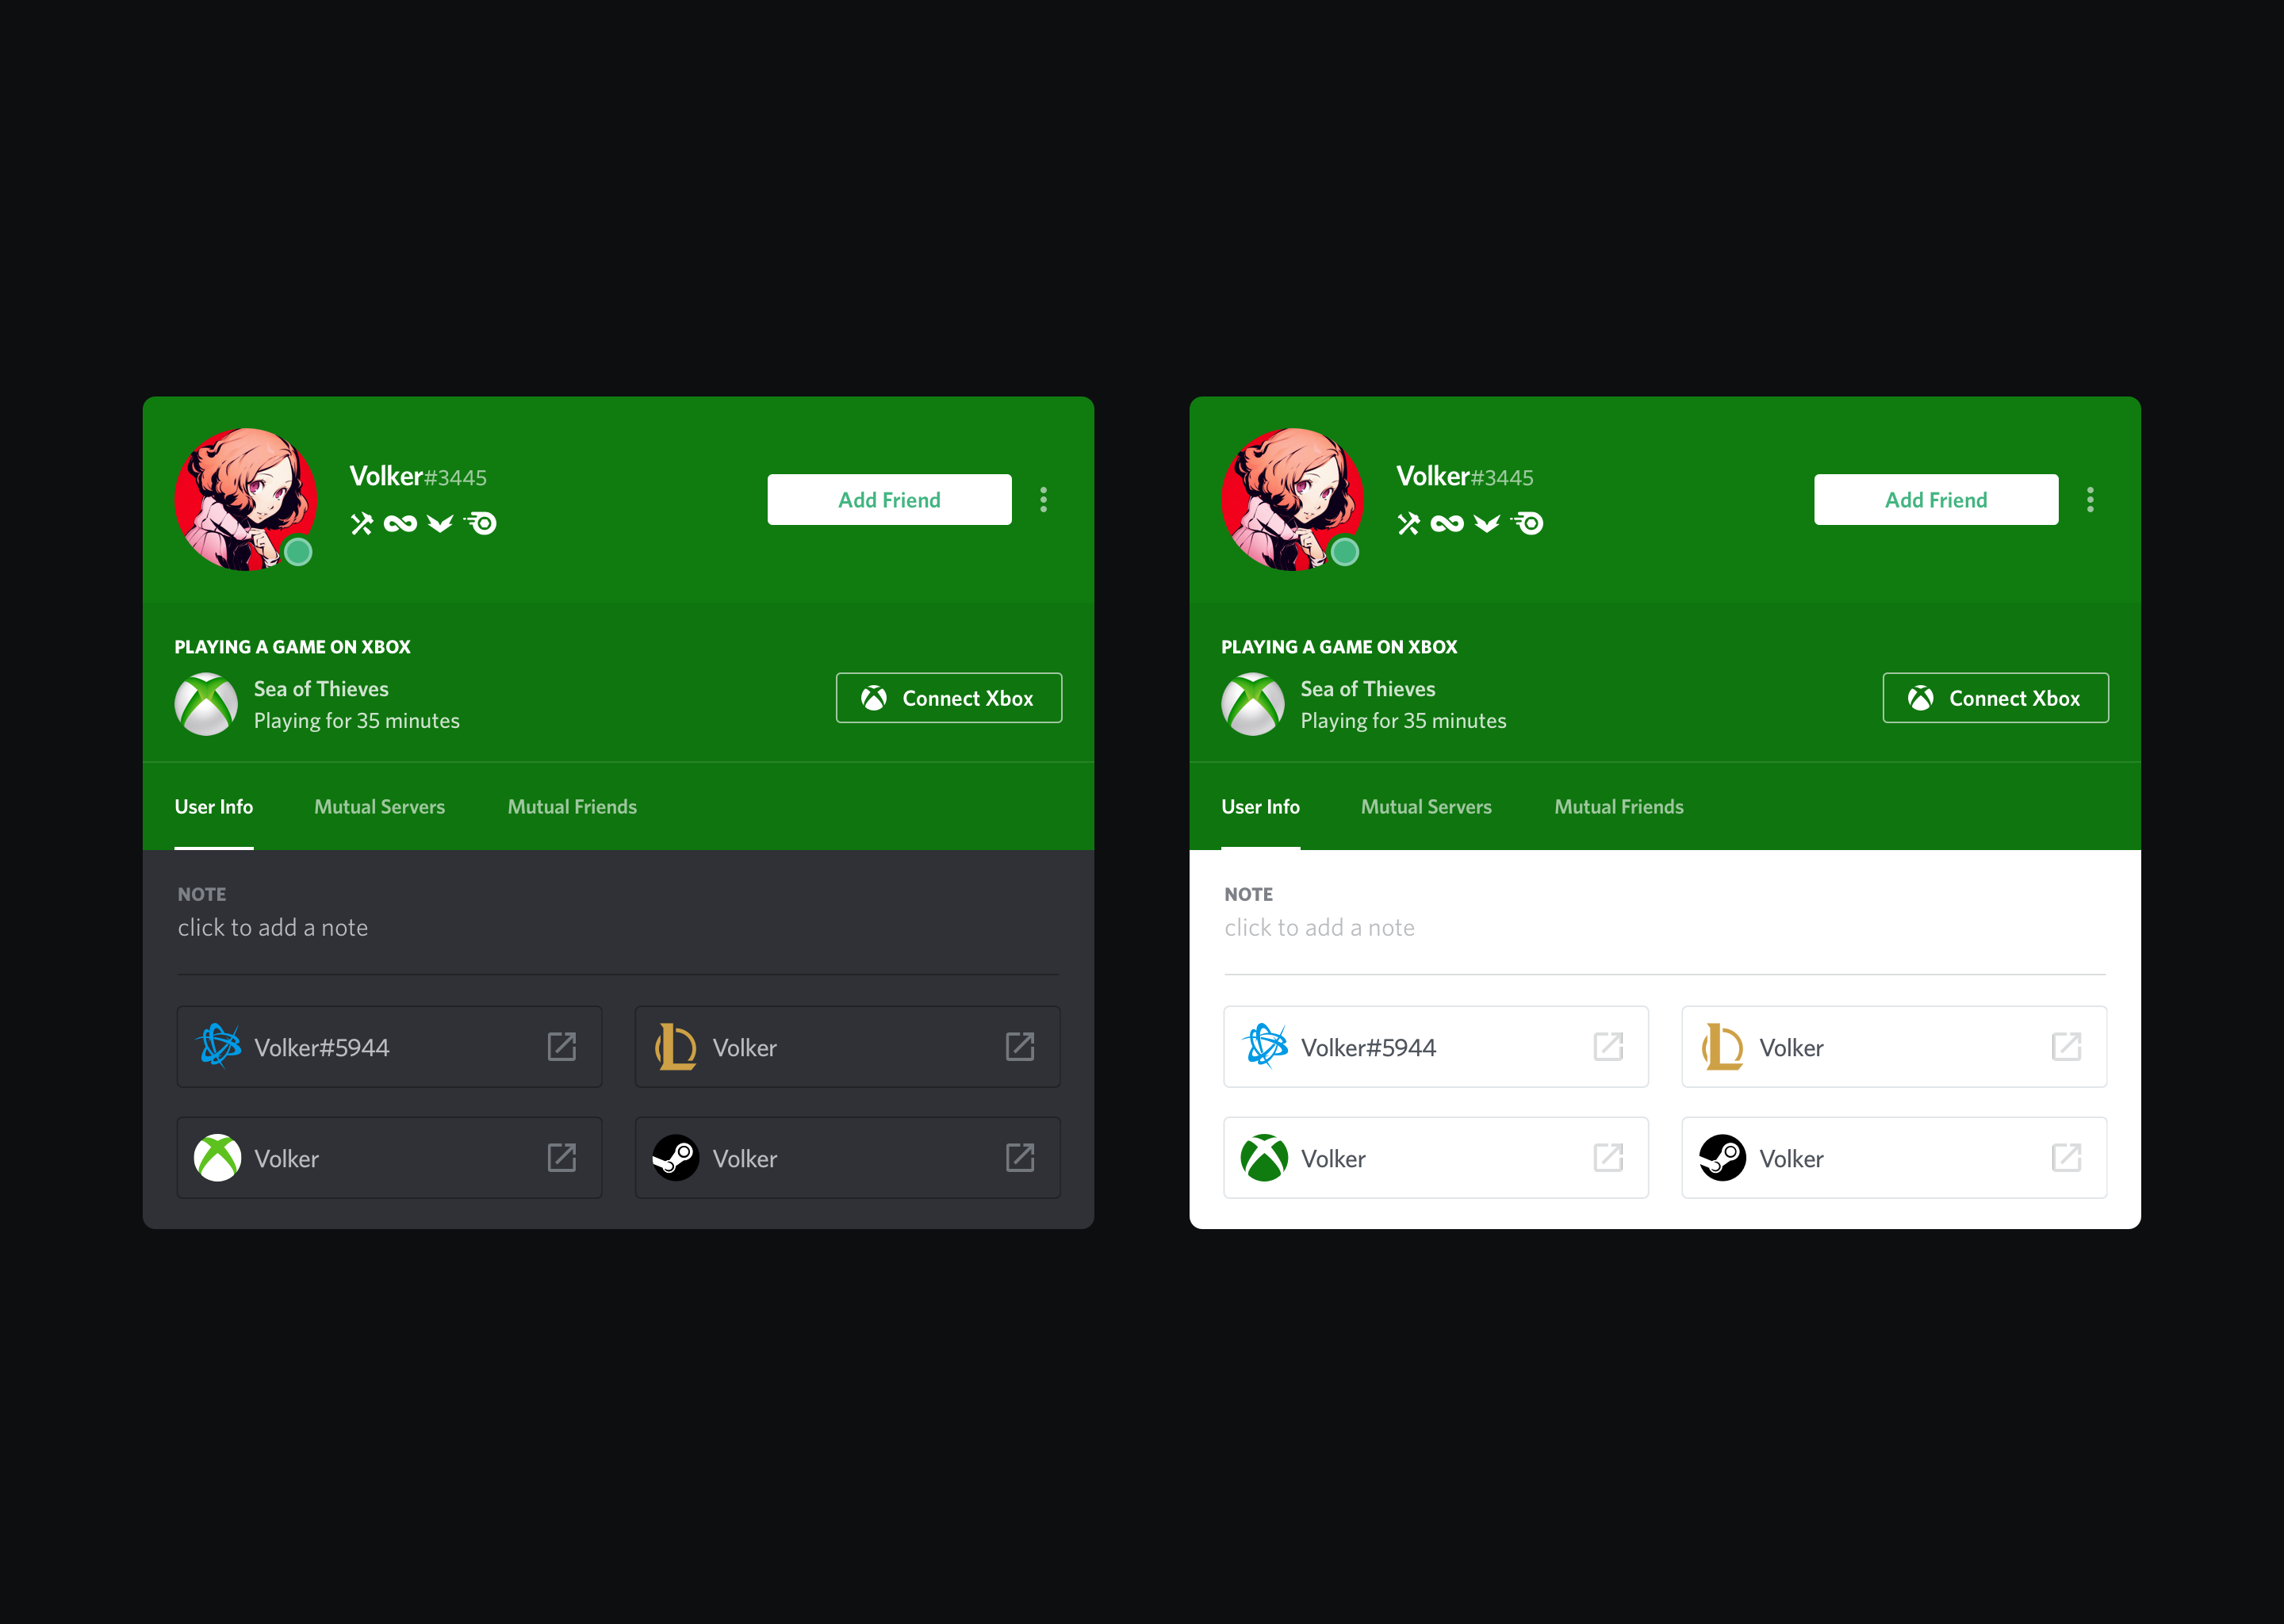 Microsoft announces Xbox collaboration with Discord to connect accounts